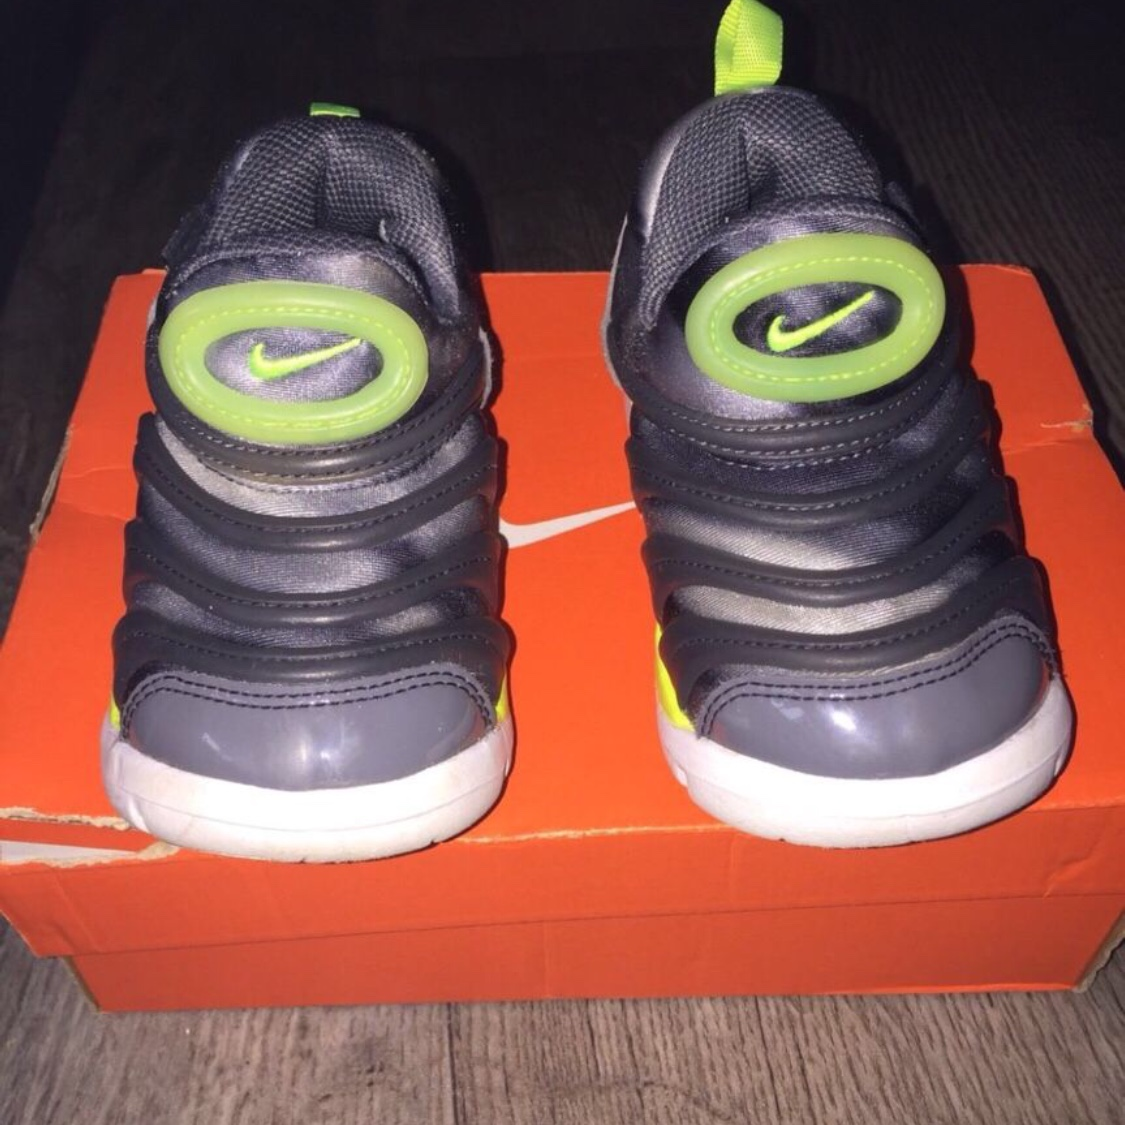 Kids nike dynamo free trainers, excellent condition Depop